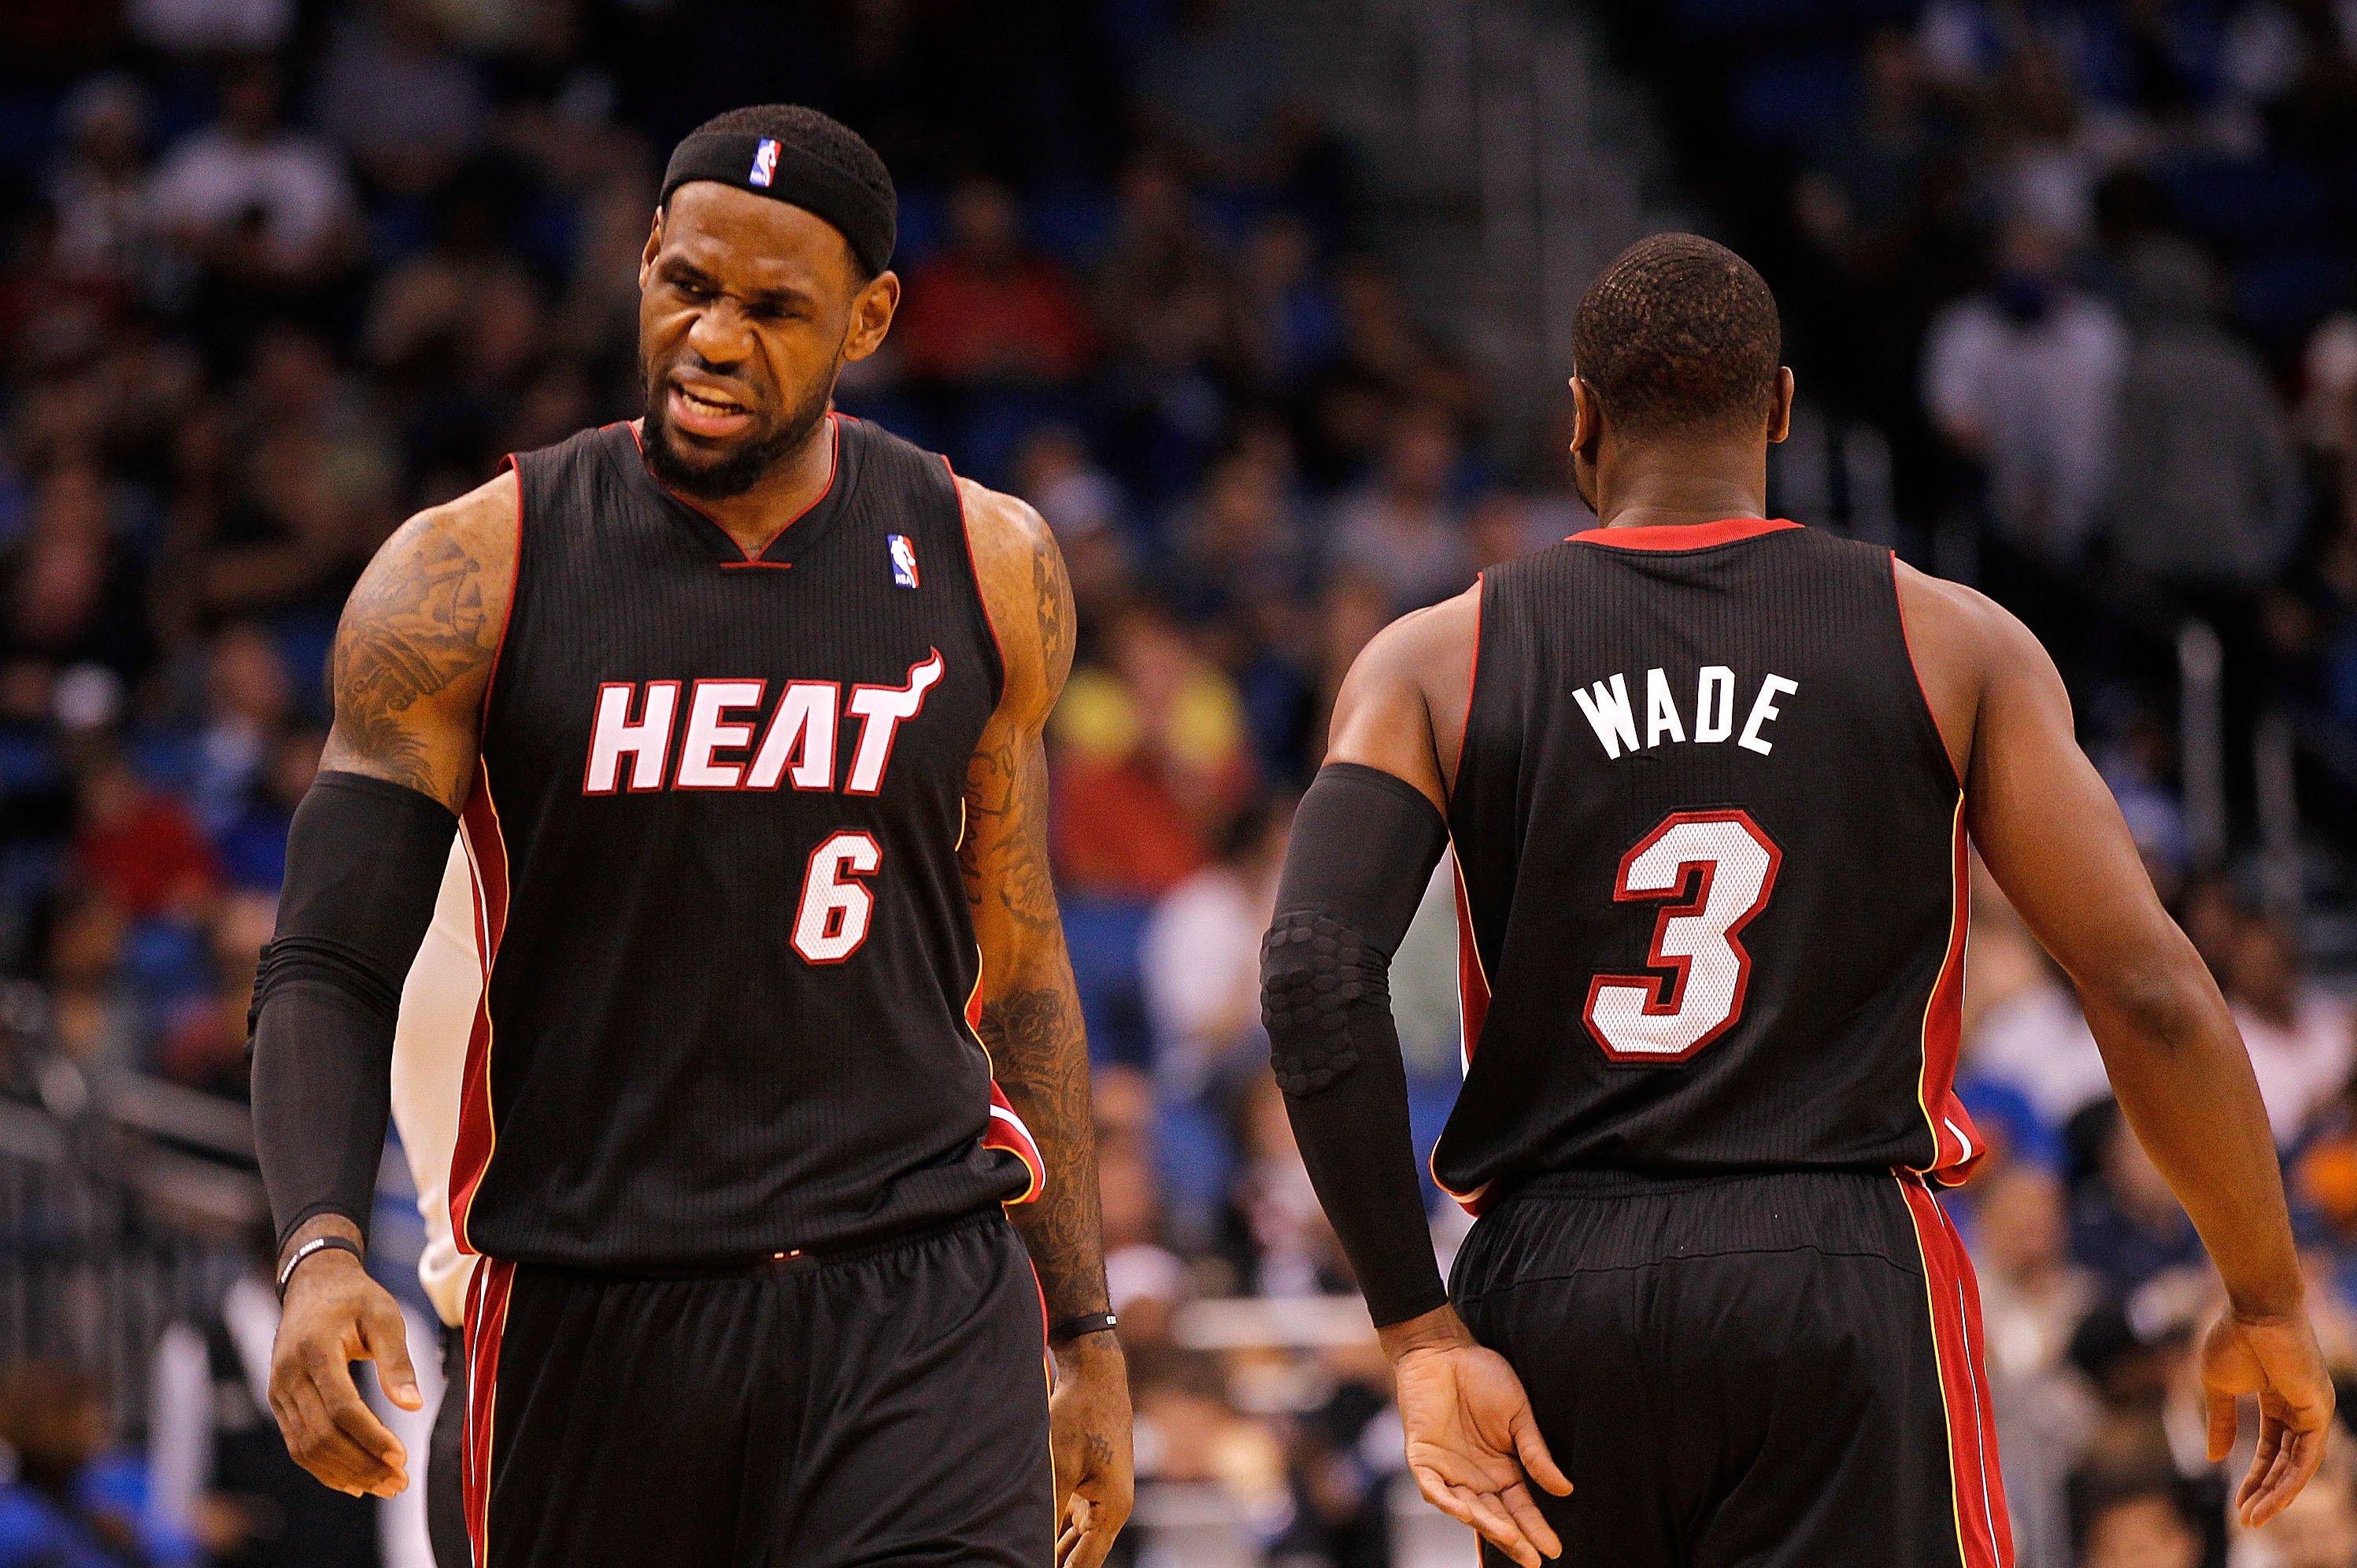 Miami Heat Roster 2012 13 Starting 5 Projections And Depth Chart Breakdown Bleacher Report Latest News Videos And Highlights